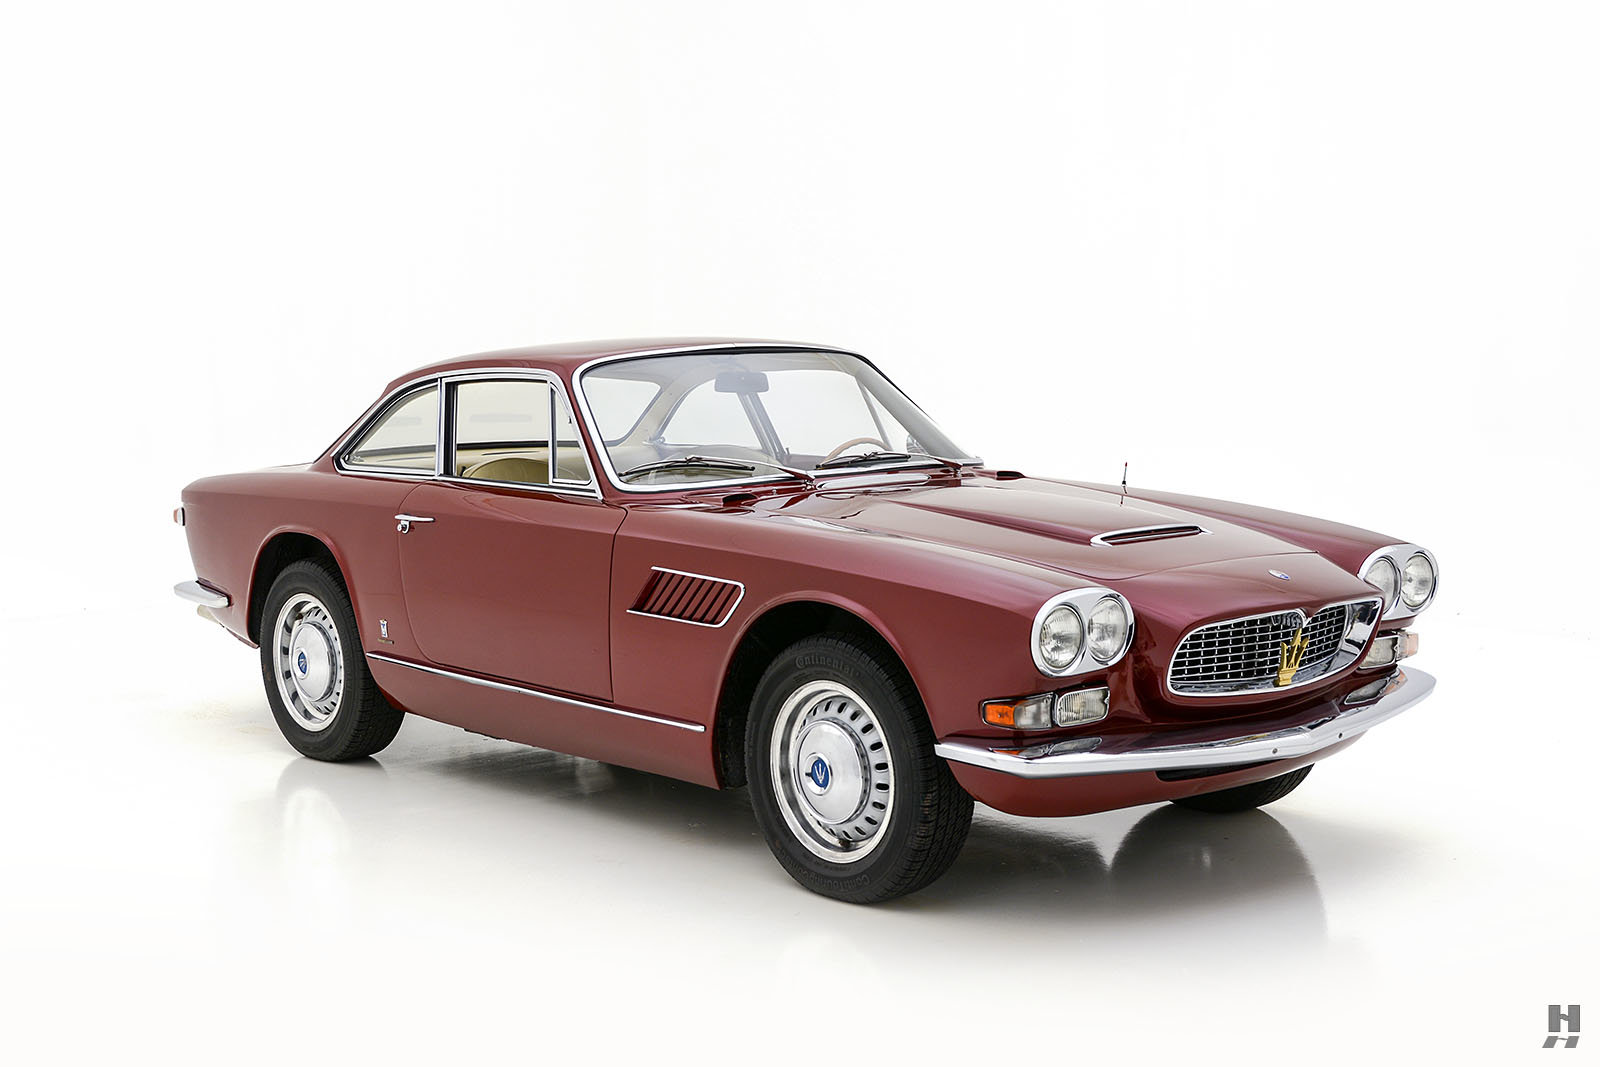 1965 MASERATI SEBRING COUPE For Sale (picture 2 of 6)